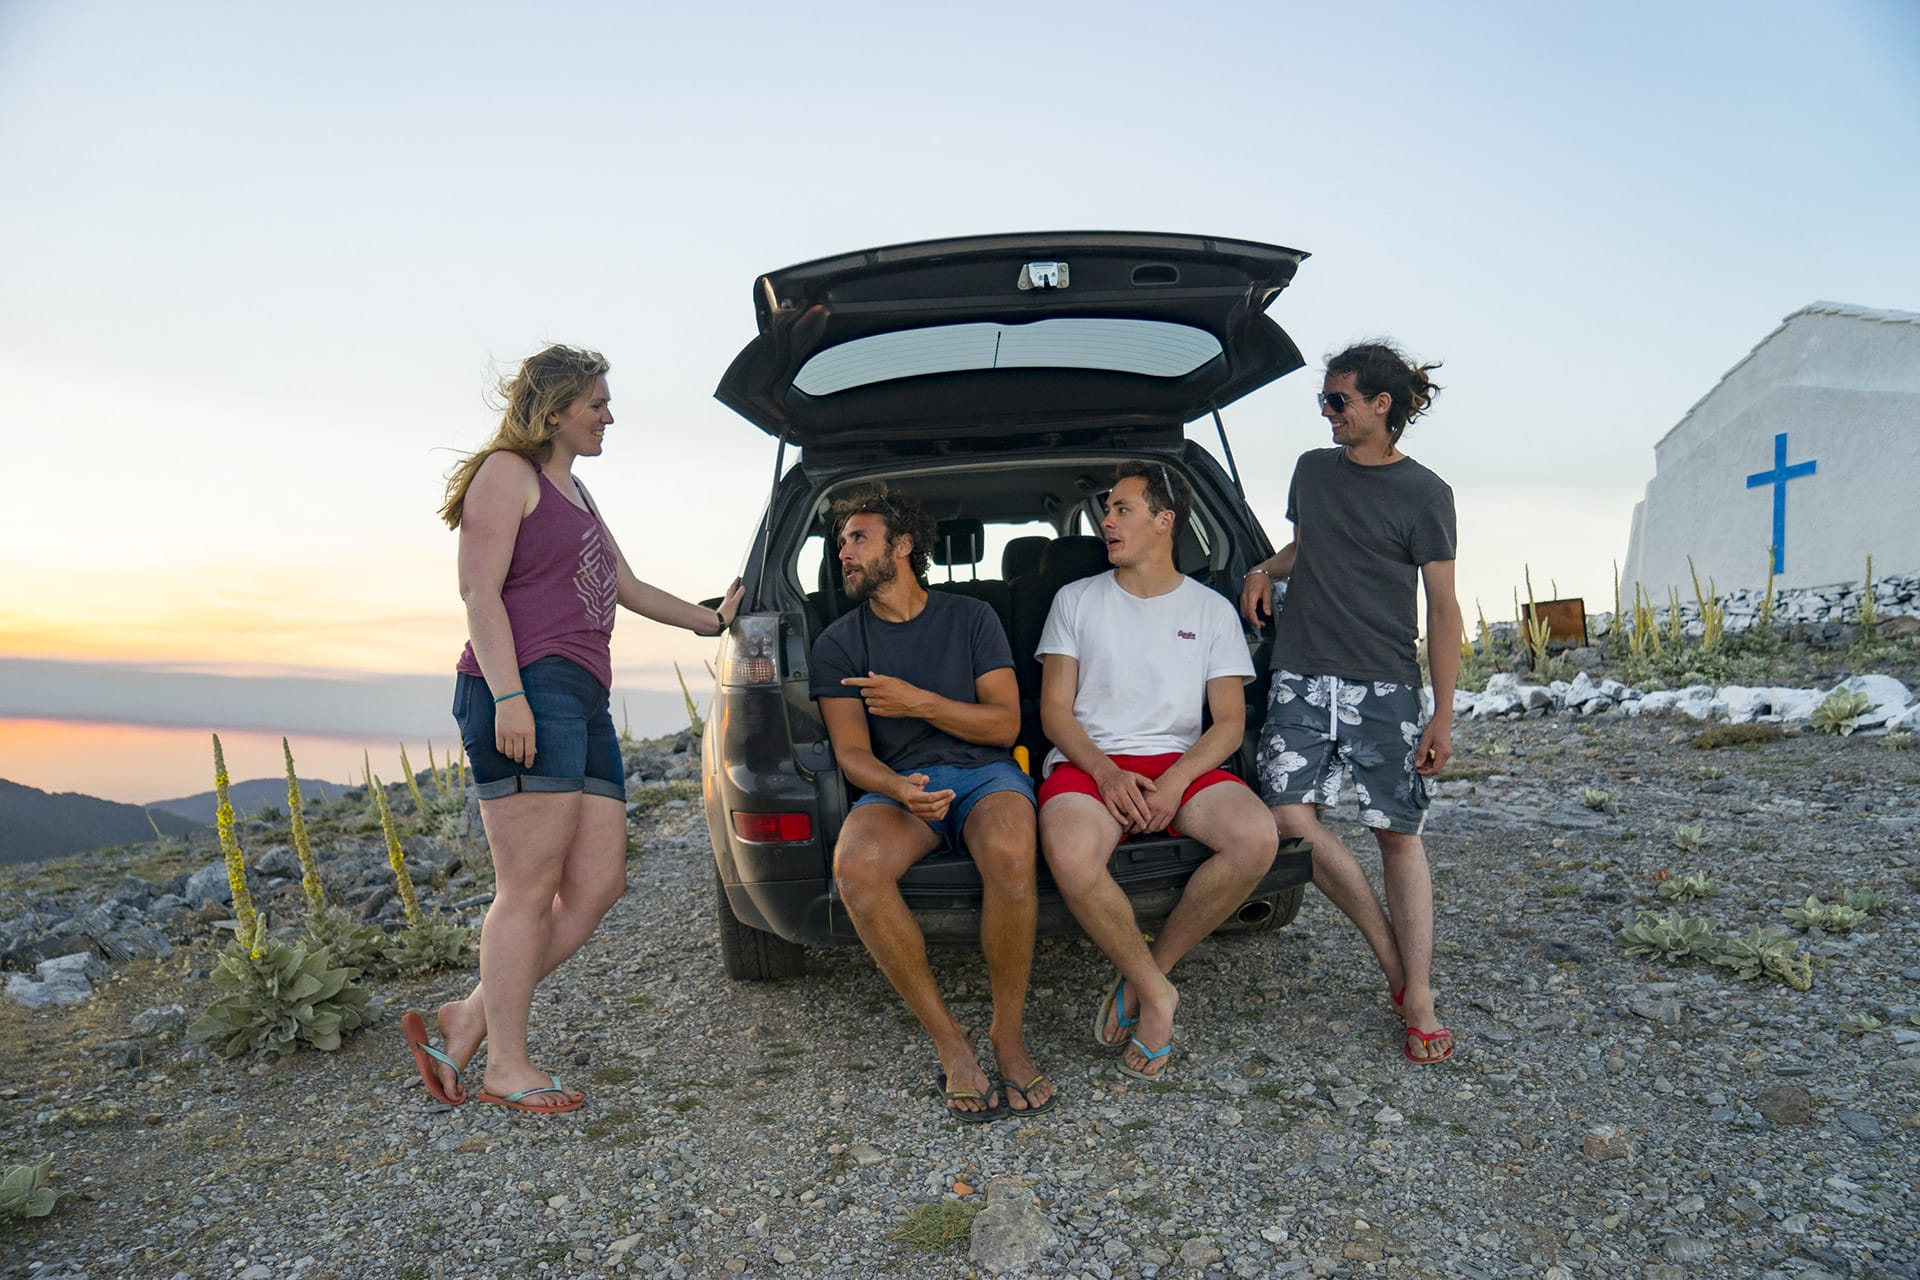 Friends exploring Samos by car and taking a break as the sun sets